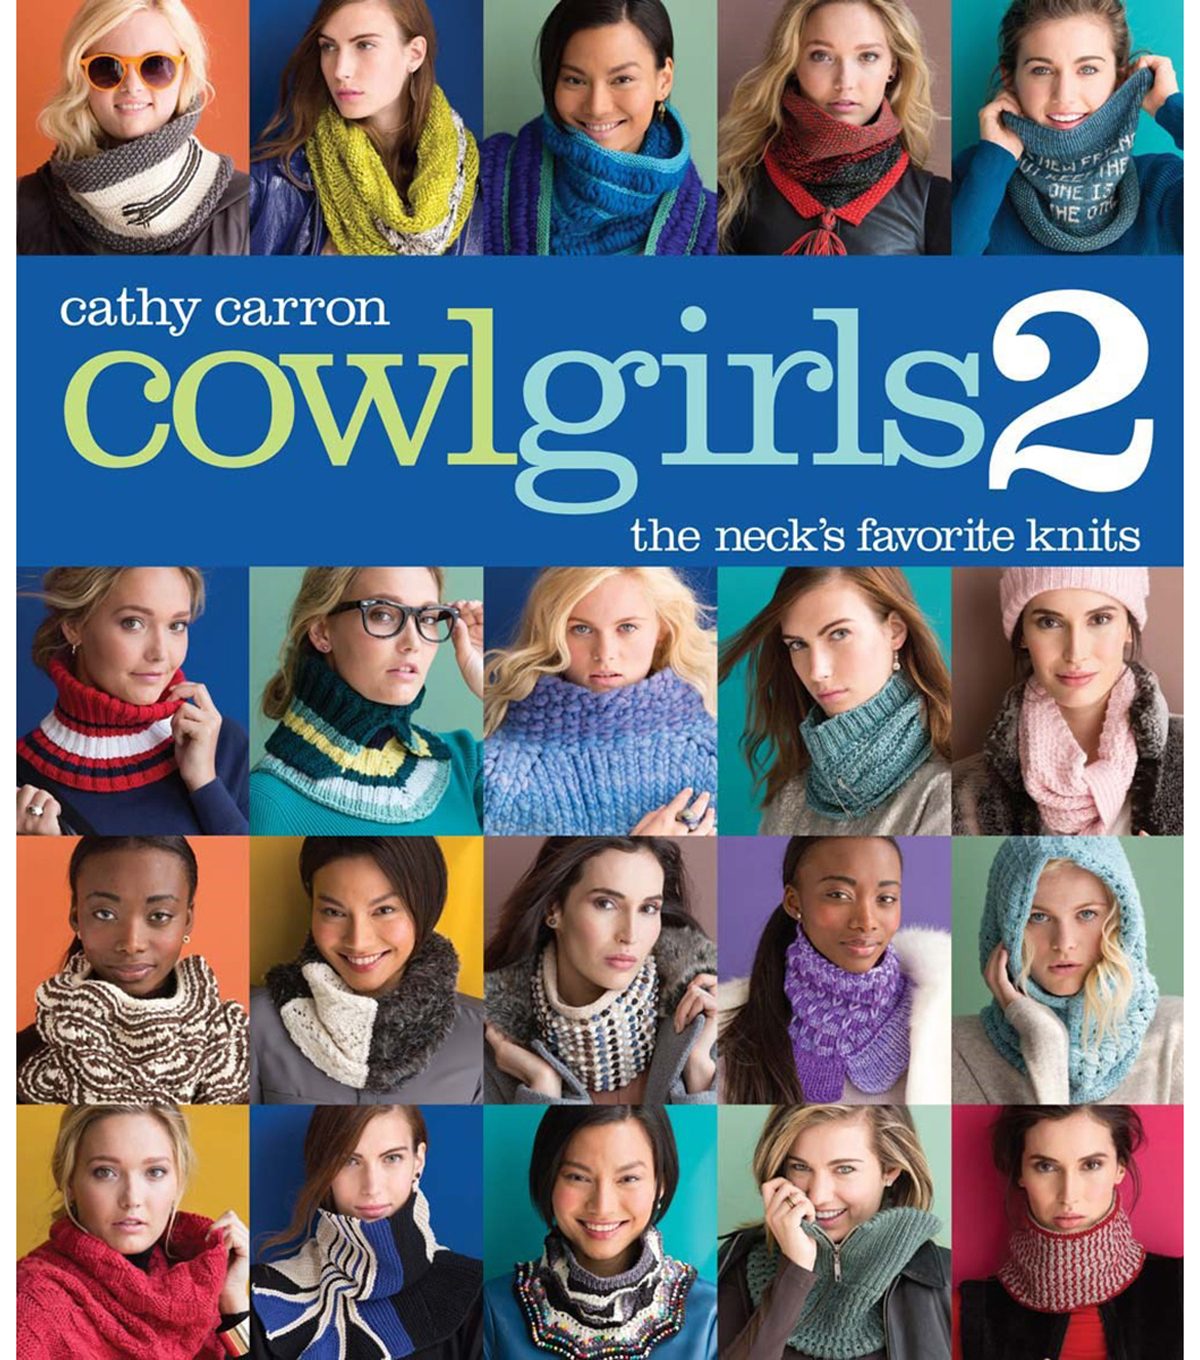 Cowl Girls 2 Book